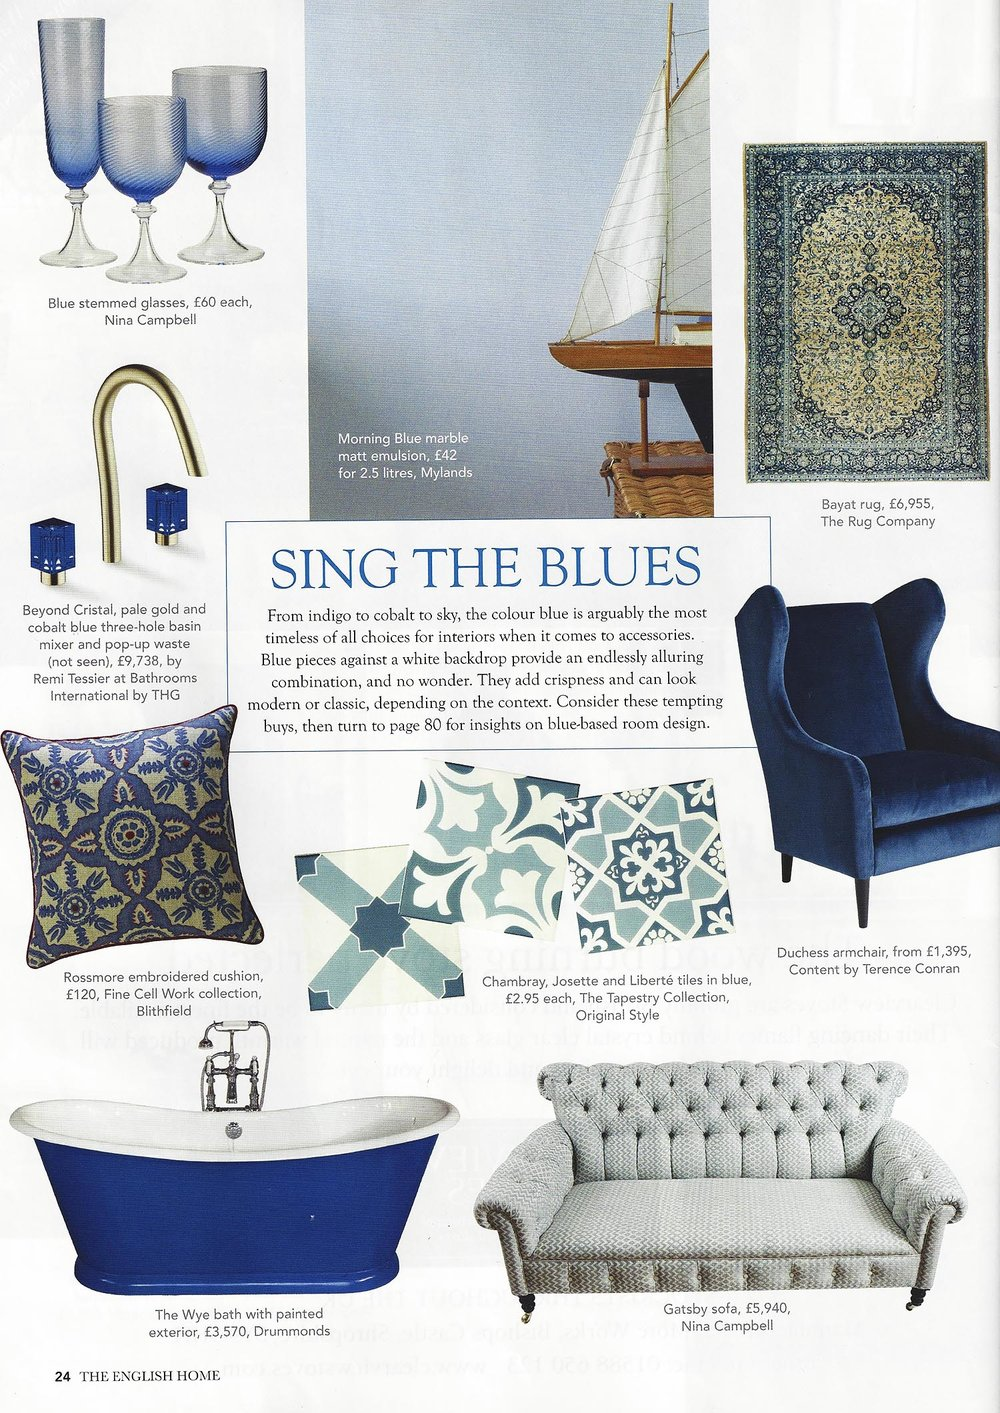 The English Home - Feb '17 - Page 24 - 'SING THE BLUES' - Fine Cell Work - Rossmore Cushion  1.jpg